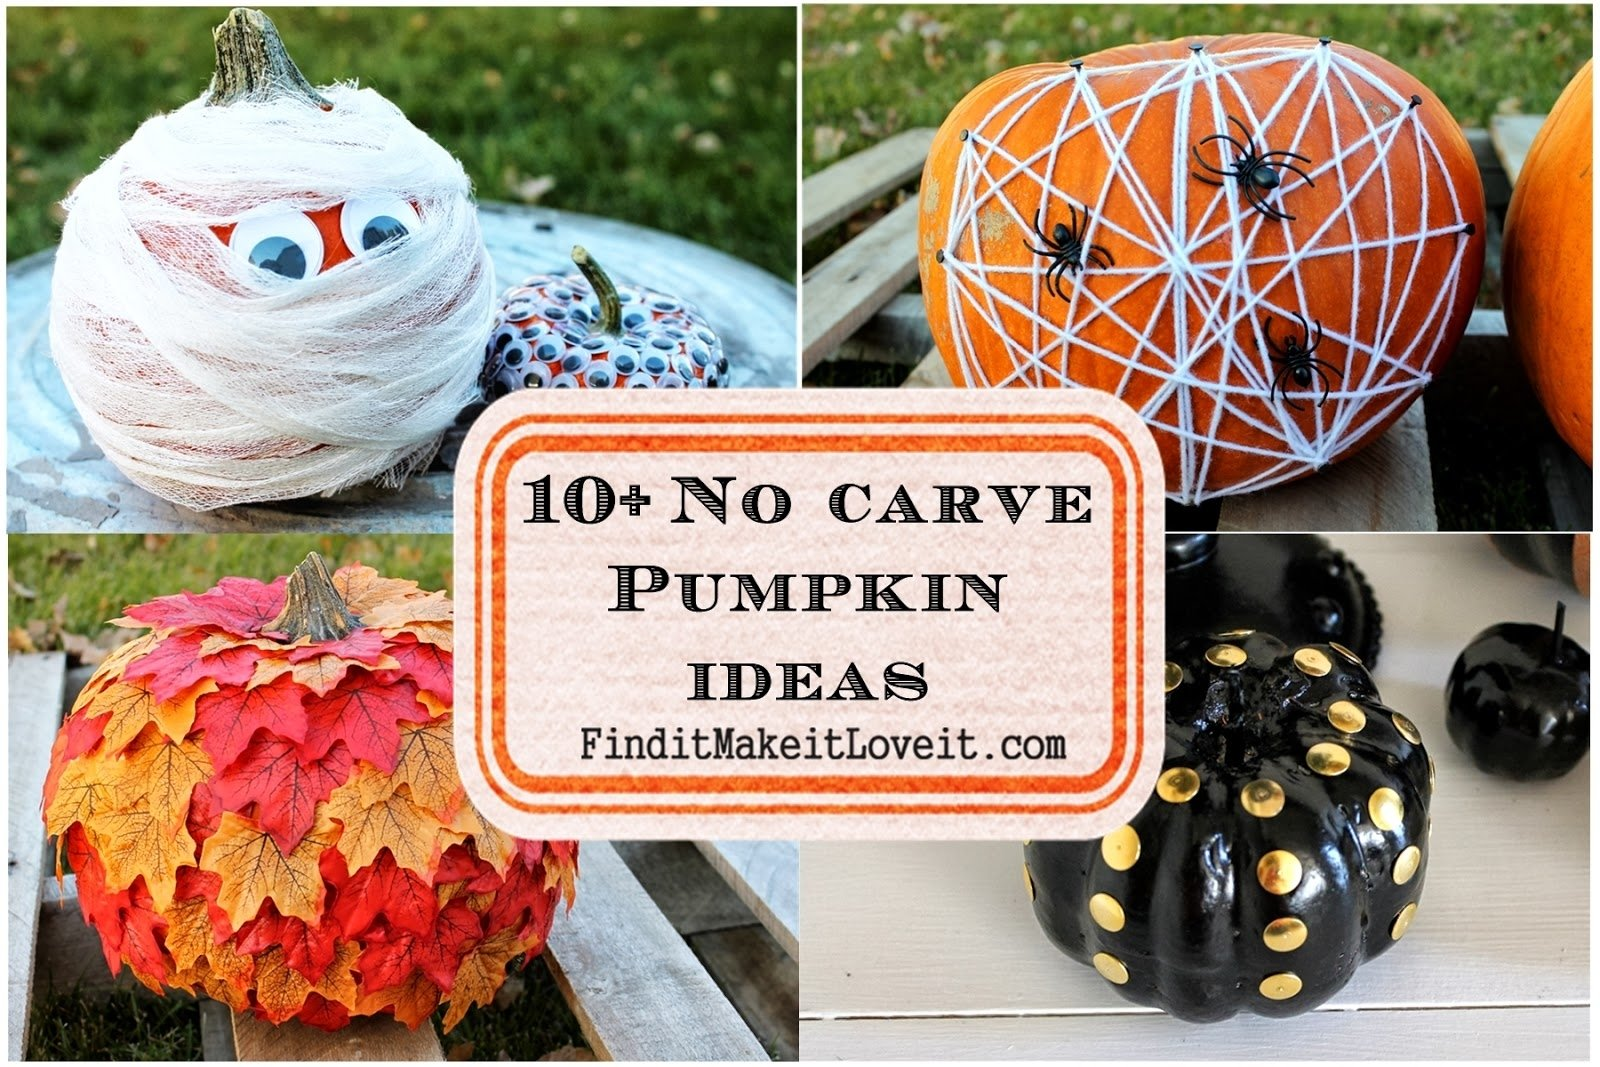 10 Famous No Carve Pumpkin Decorating Ideas no carve pumpkin ideas find it make it love it